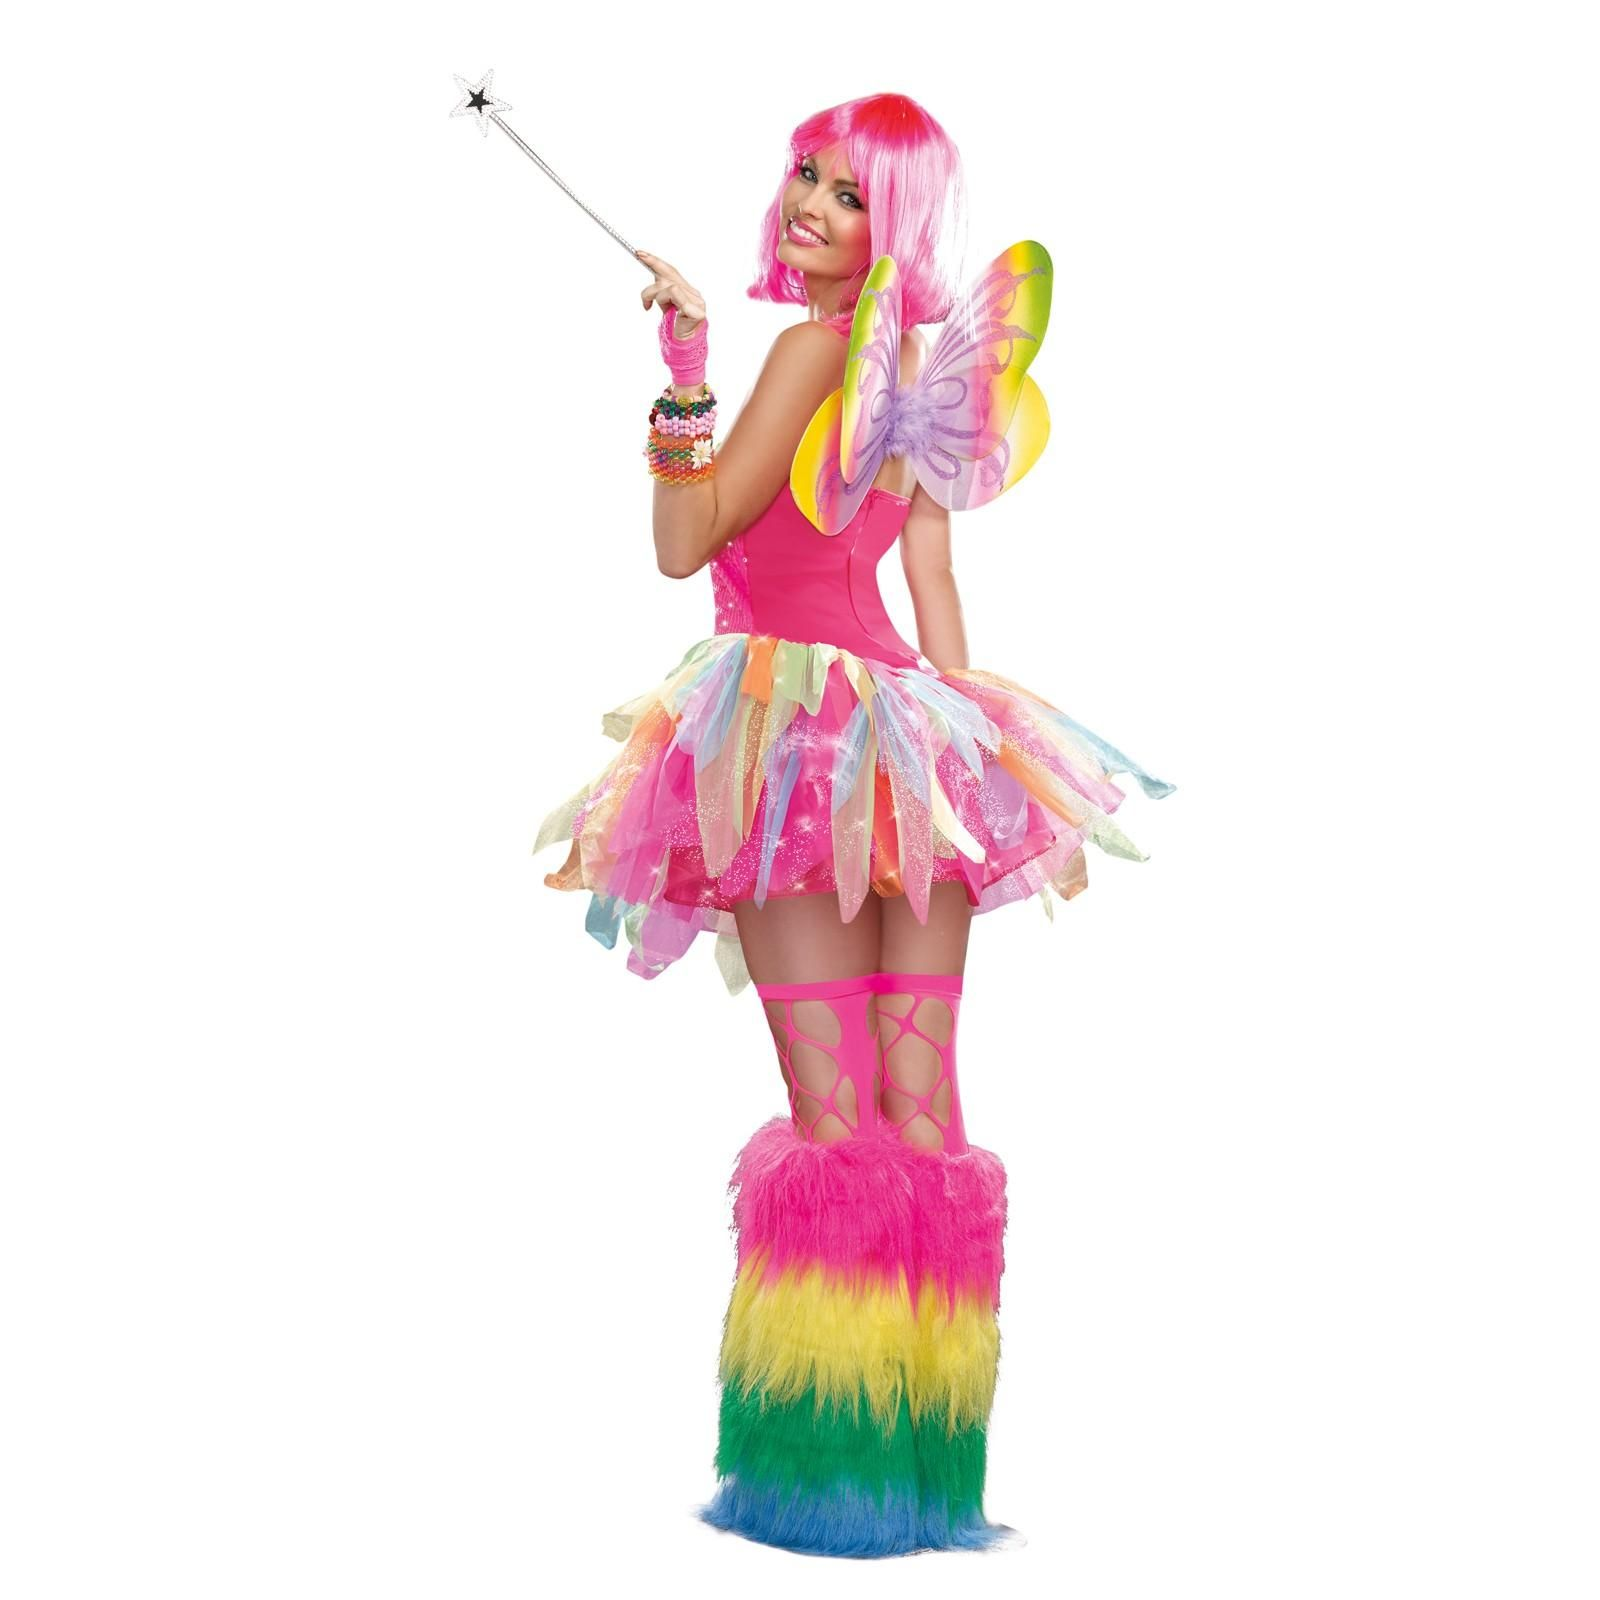 //images.buycostumes.com/mgen/rainbow-fairy-  sc 1 st  Pinterest & http://images.buycostumes.com/mgen/rainbow-fairy-rave-dress-bc ...